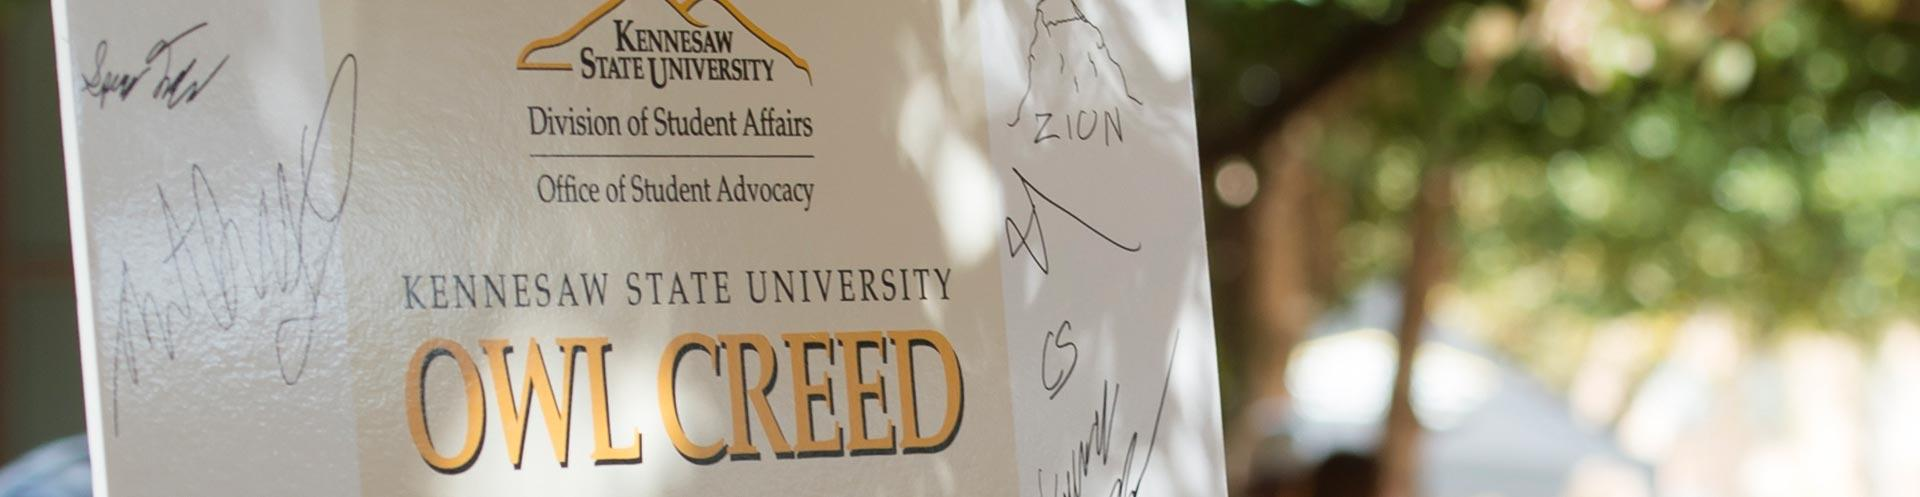 KSU Student Owl Creed